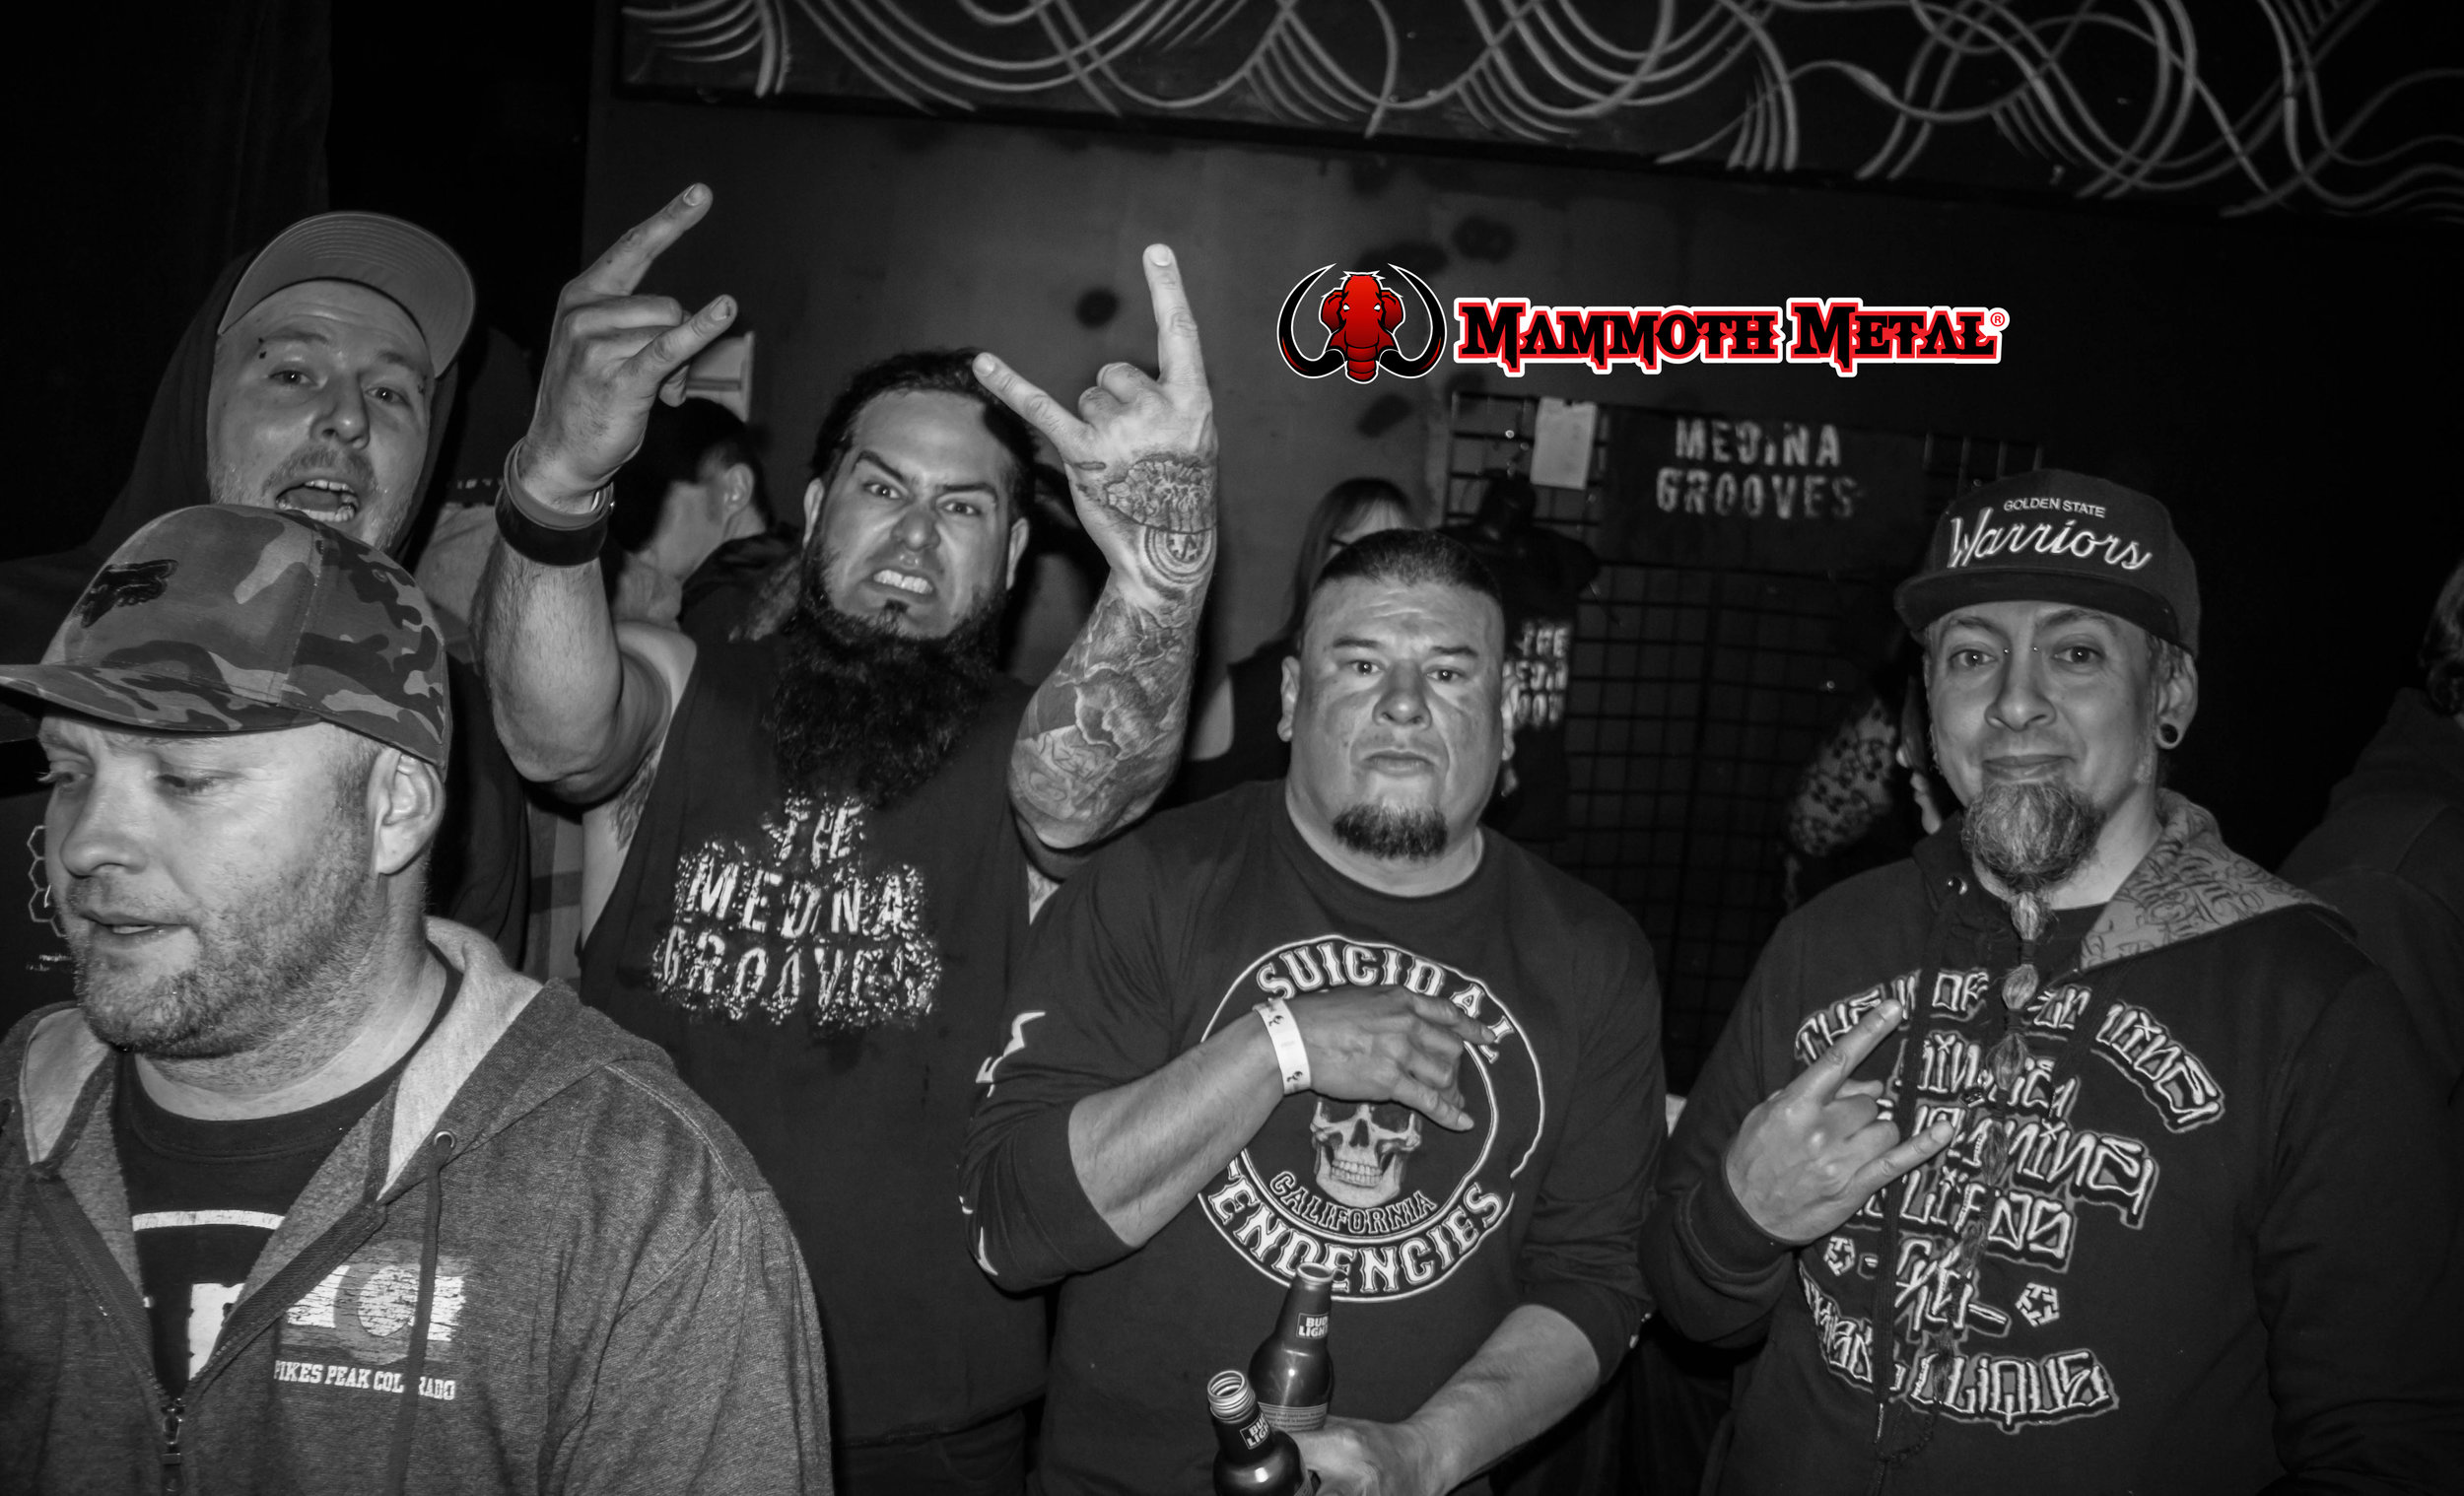 Good time with great friends.  \m/  photo: David Burke